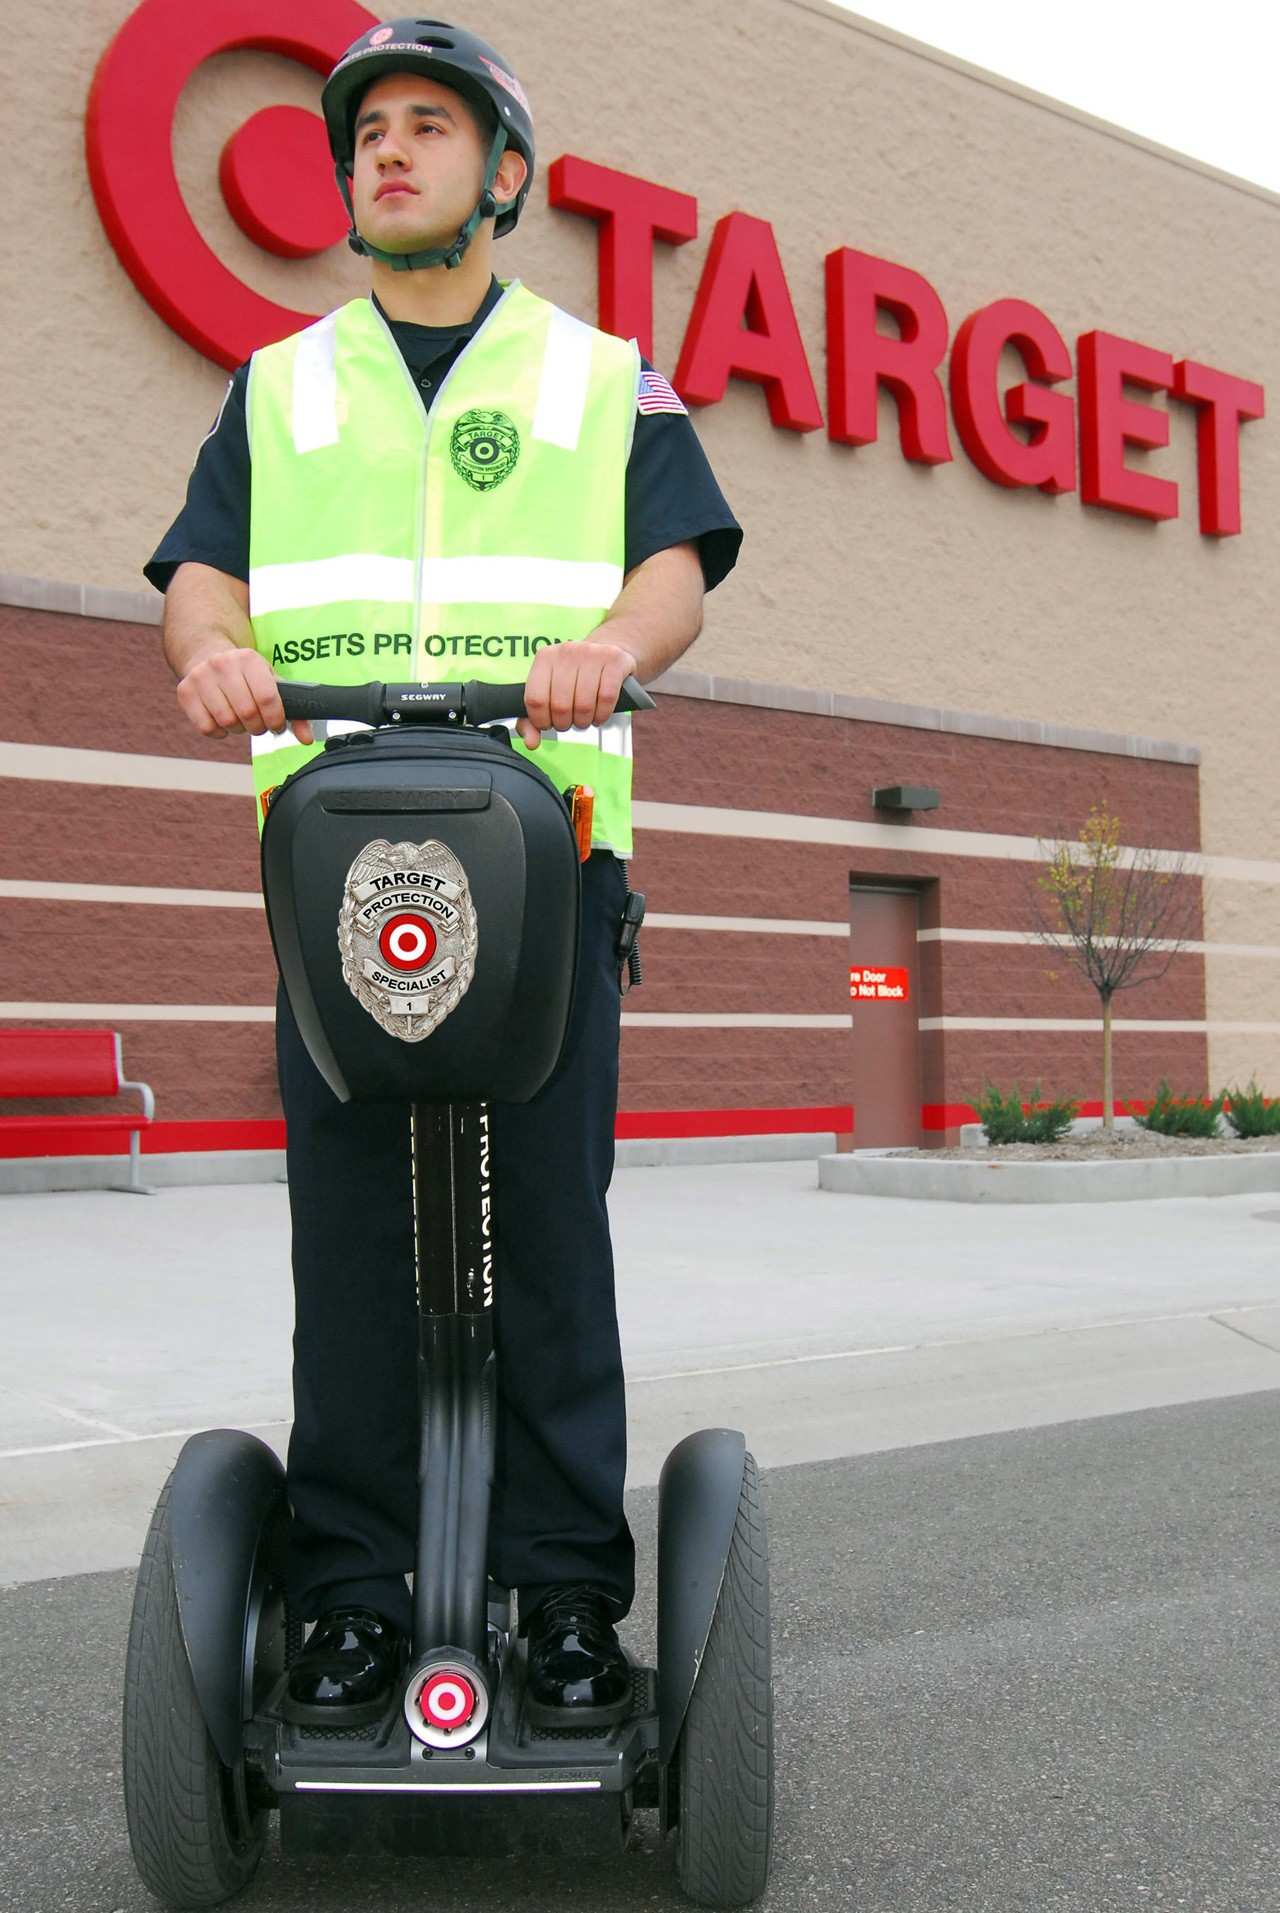 target security officer riding a segway photo gallery